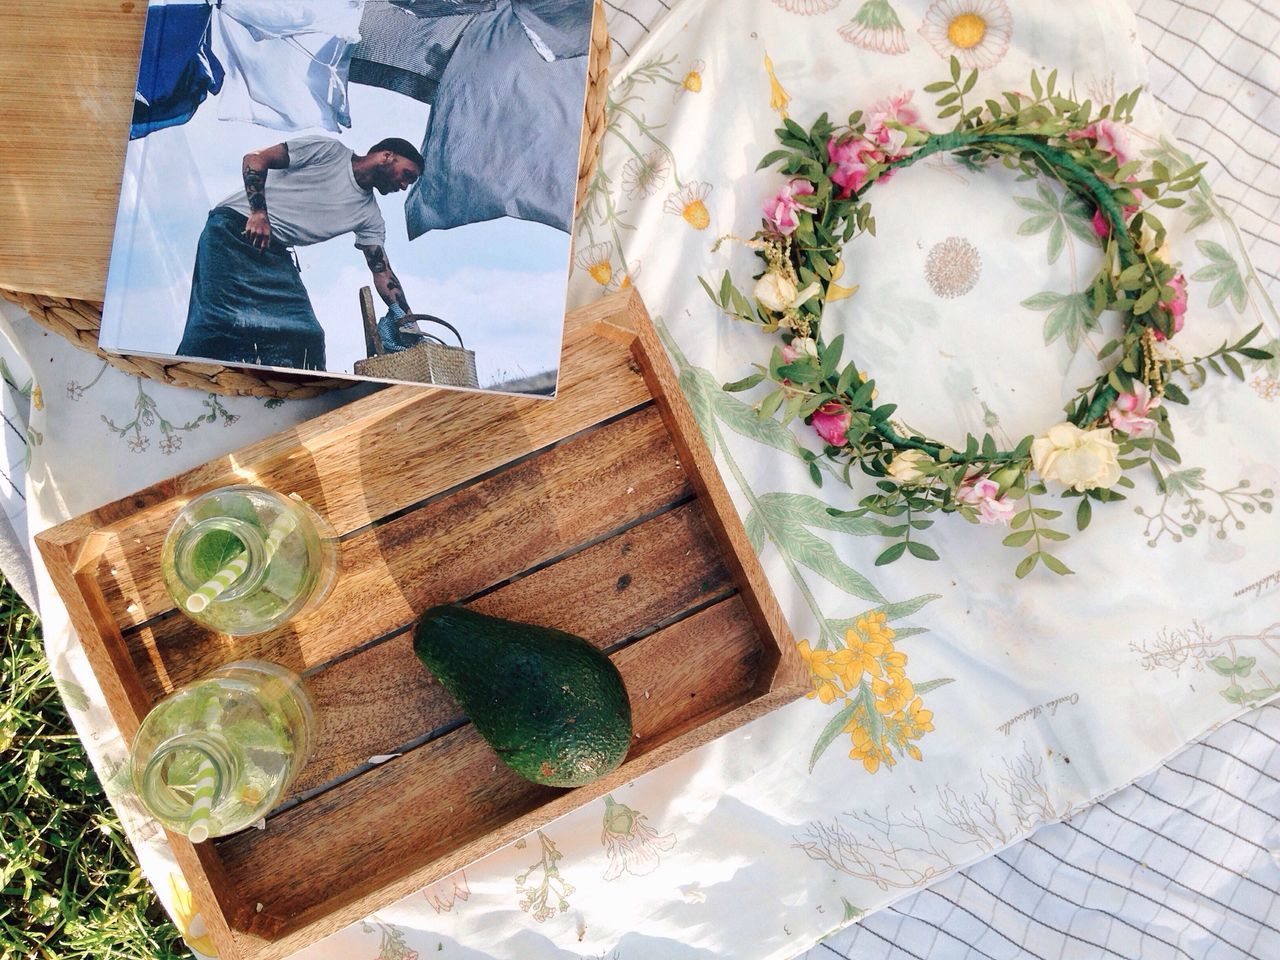 Summer drinks on the grass High Angle View Flower Day Magazine Drinks Drinking Glass Avocado Fruits Copy Space Top View